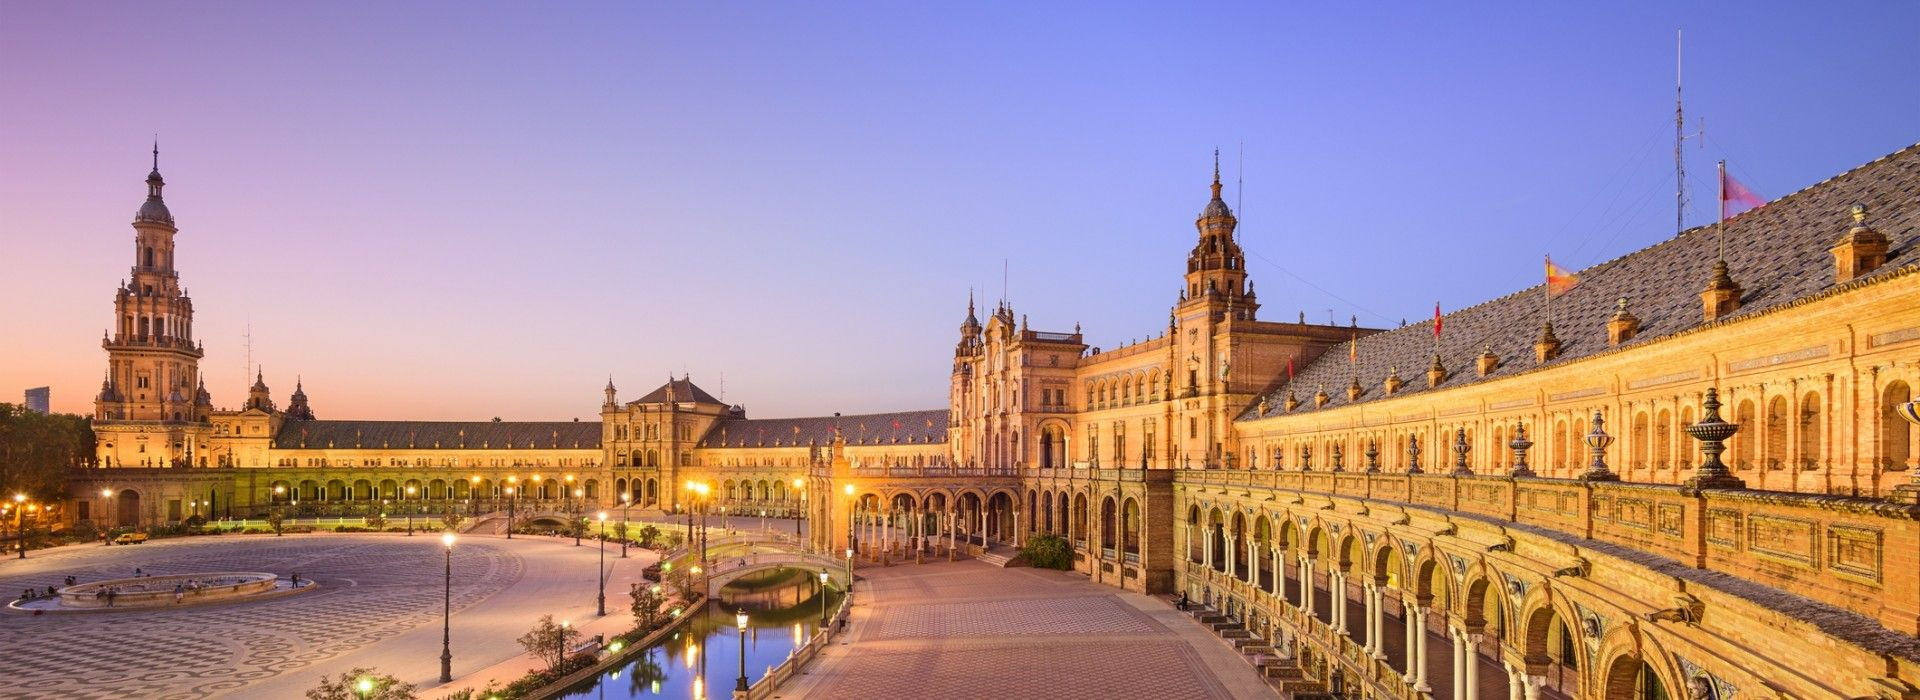 Segway tours in Spain